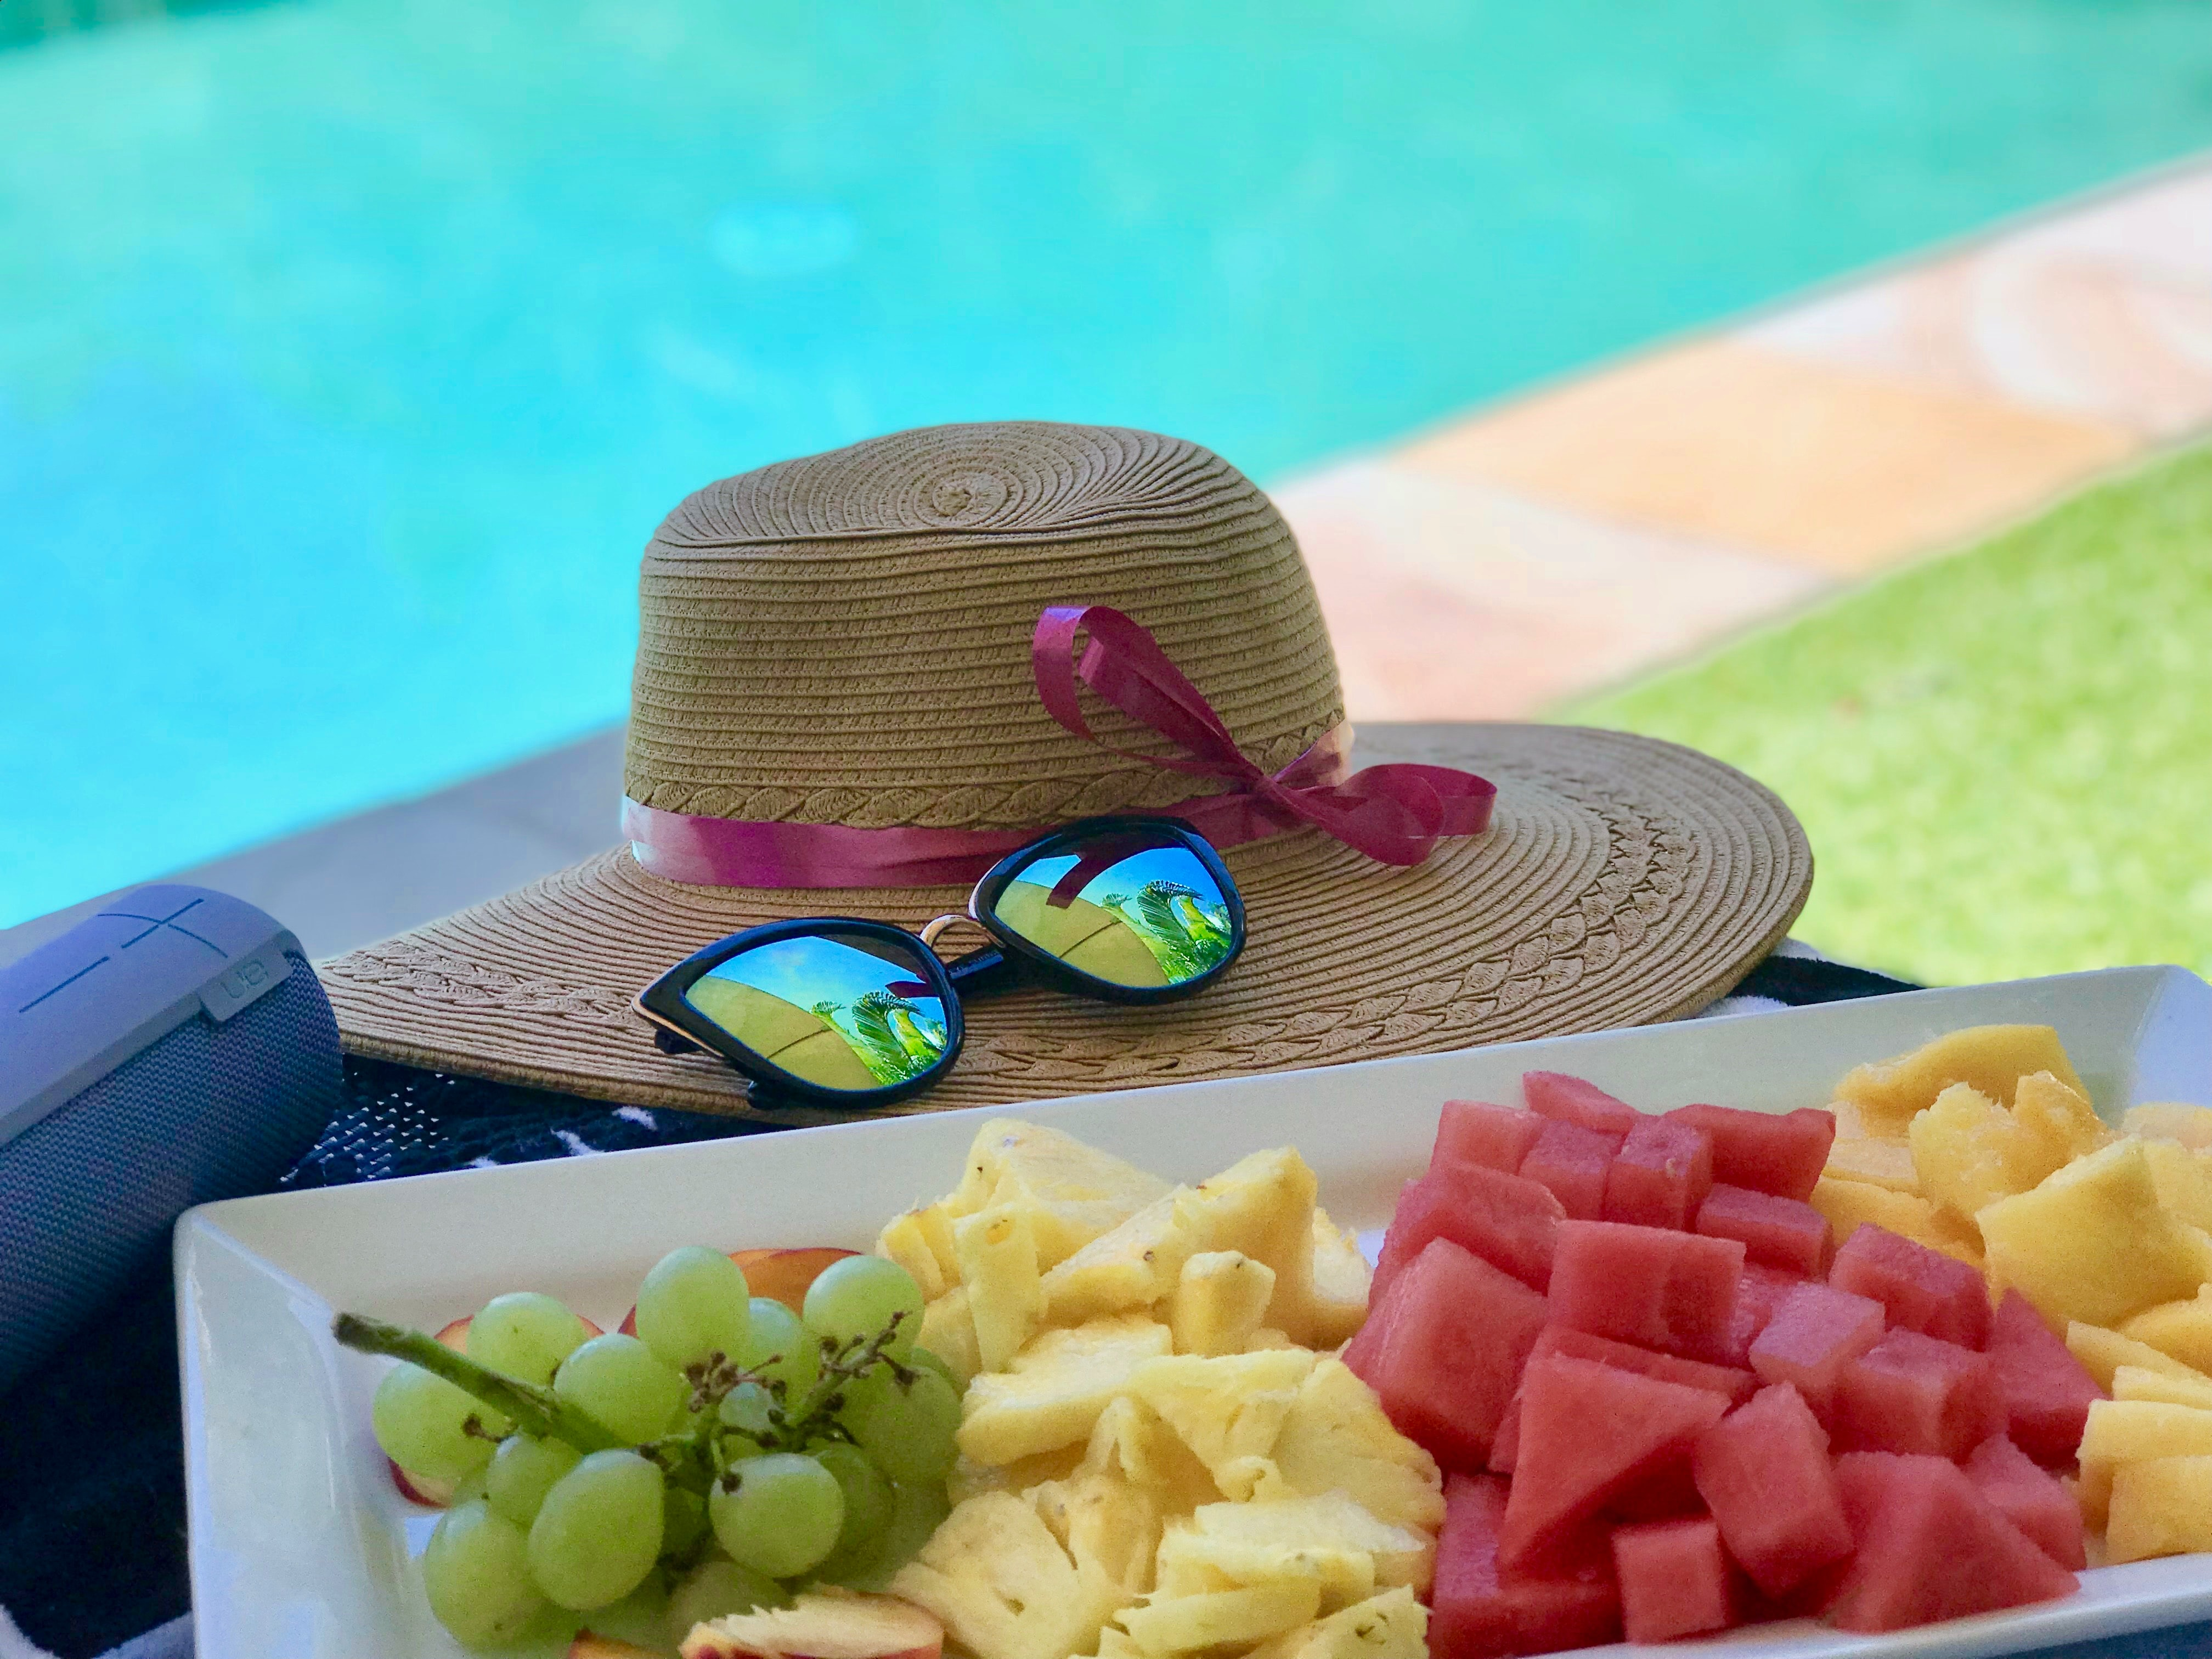 sliced fruits on white tray next to sunglasses and straw hat